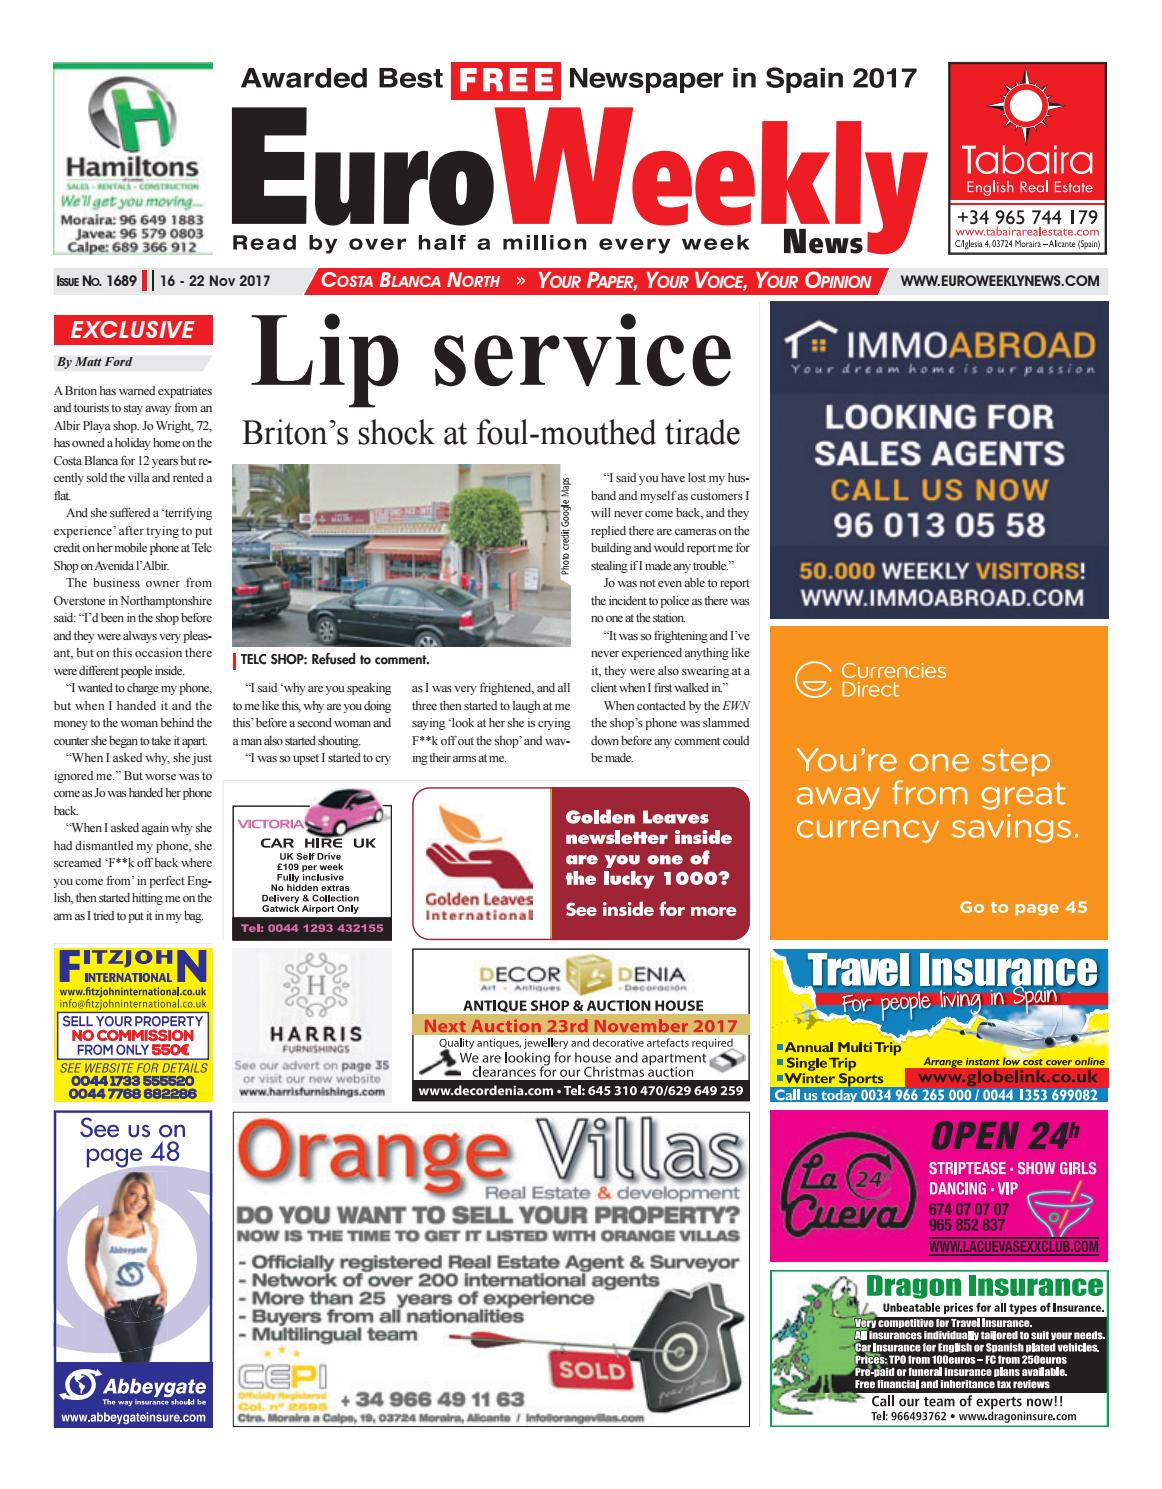 Ana Alice Nicolau Nua euro weekly news - costa blanca north 16 – 22 november 2017